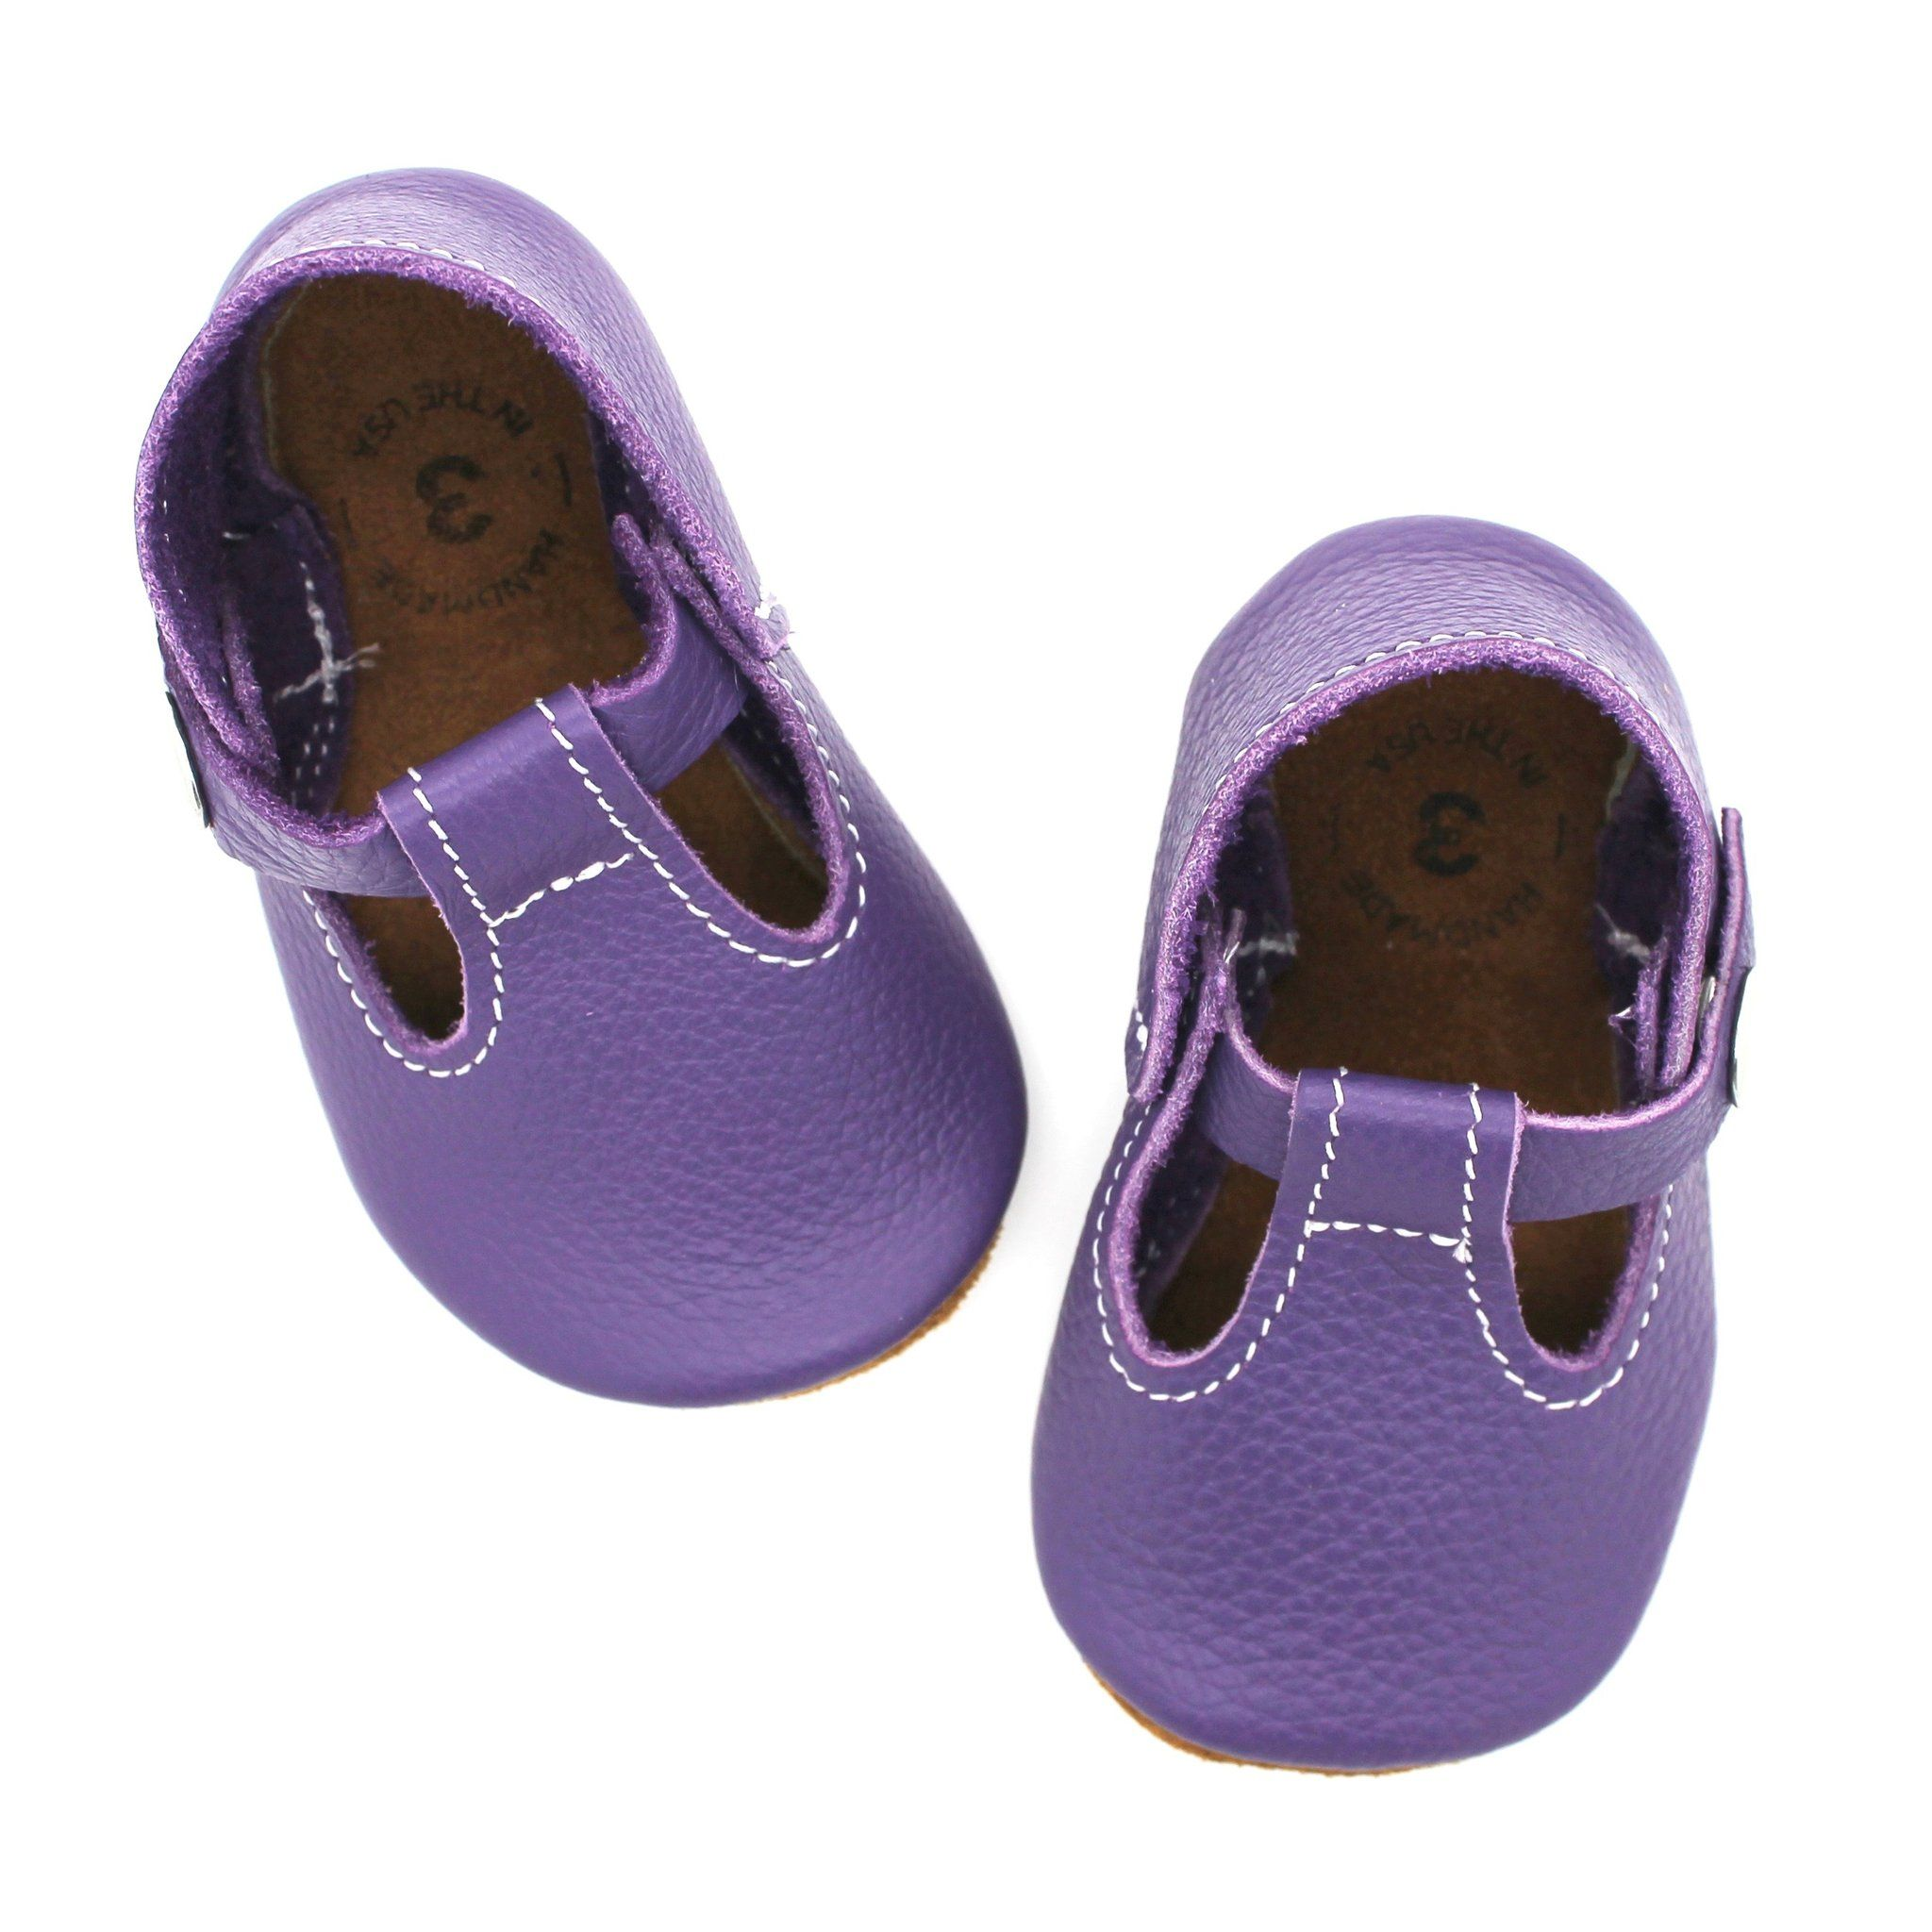 the original soft soled t strap shoes for kids perfect purple